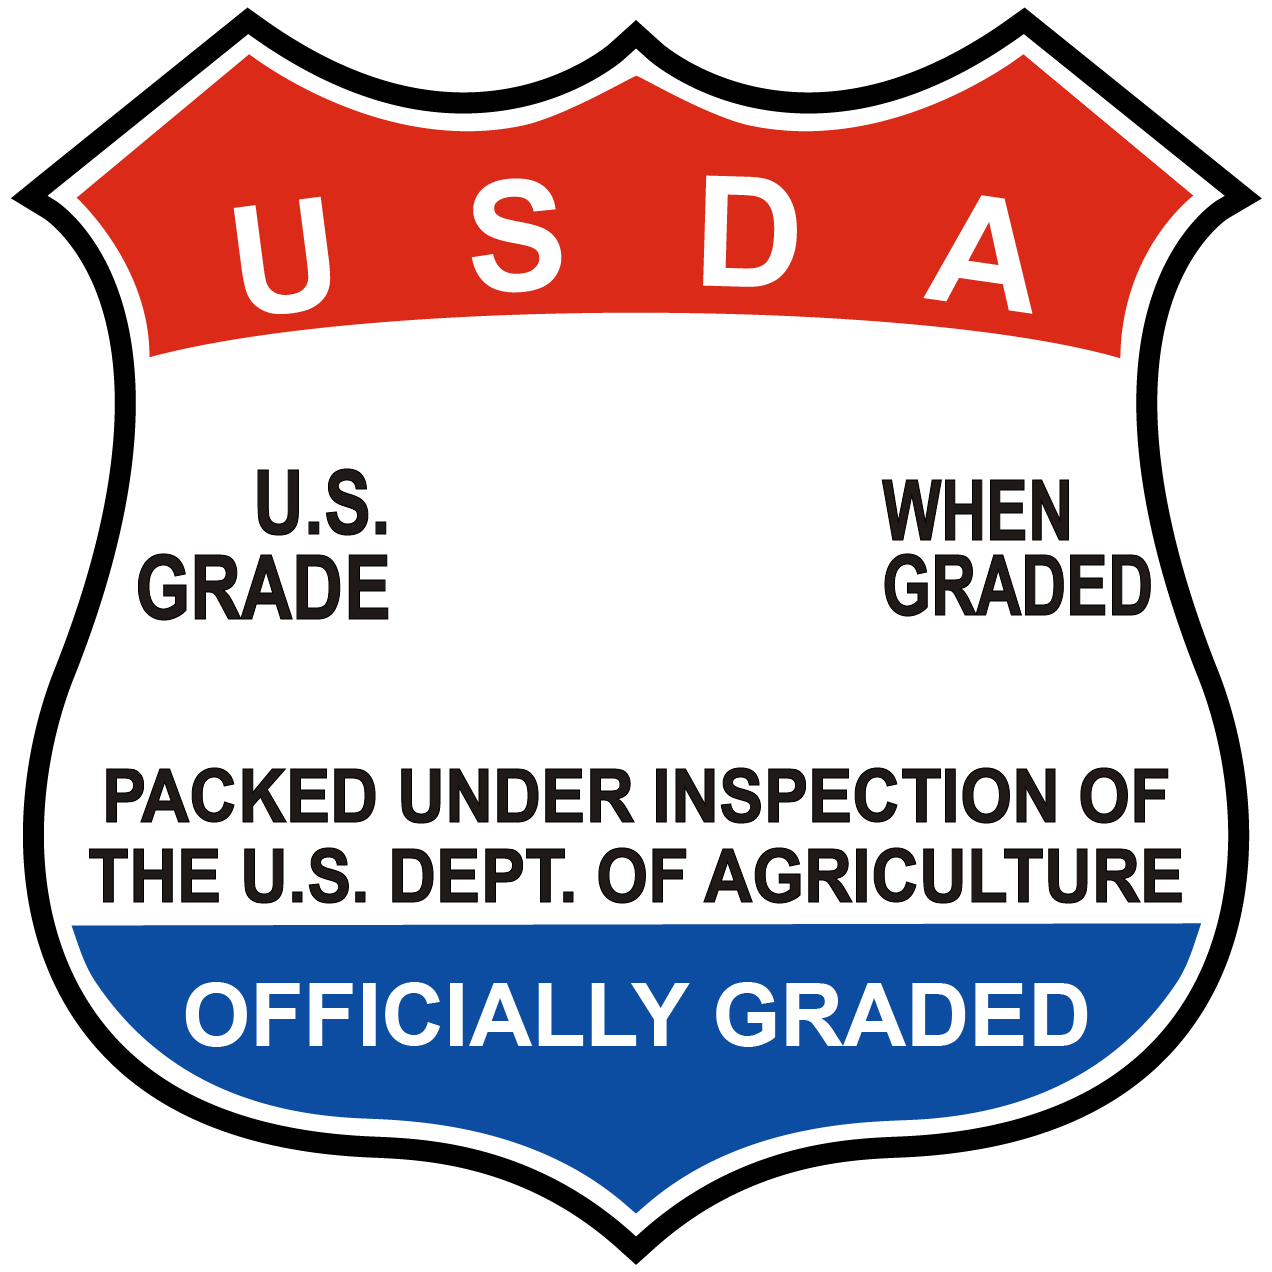 Dairy official quality shields. Butter clipart grade a